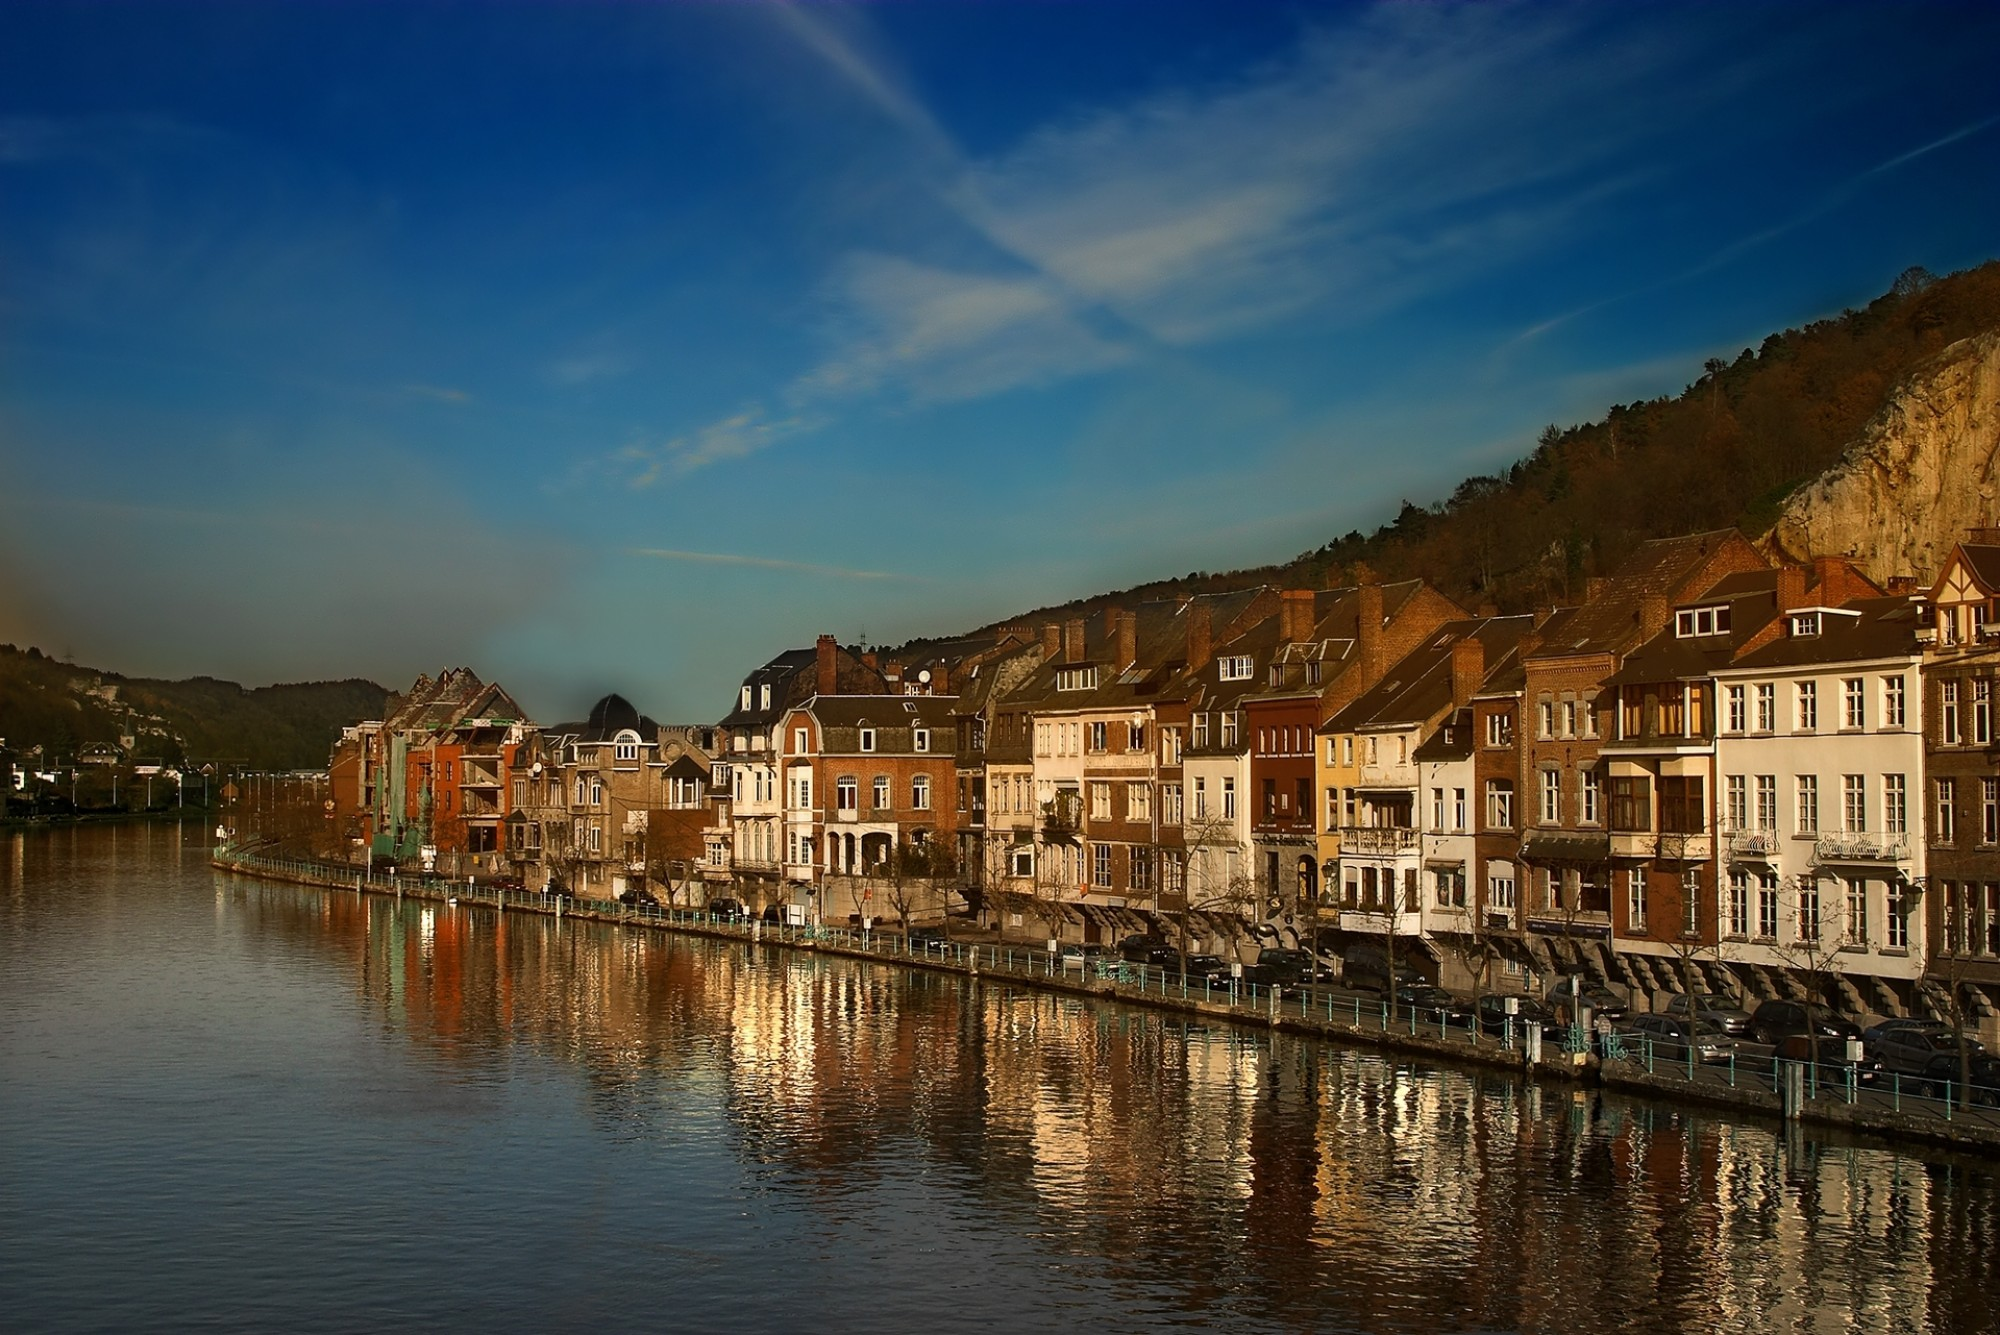 The-beautiful-city-of-Dinant-Belgium-along-the-river-Meuse